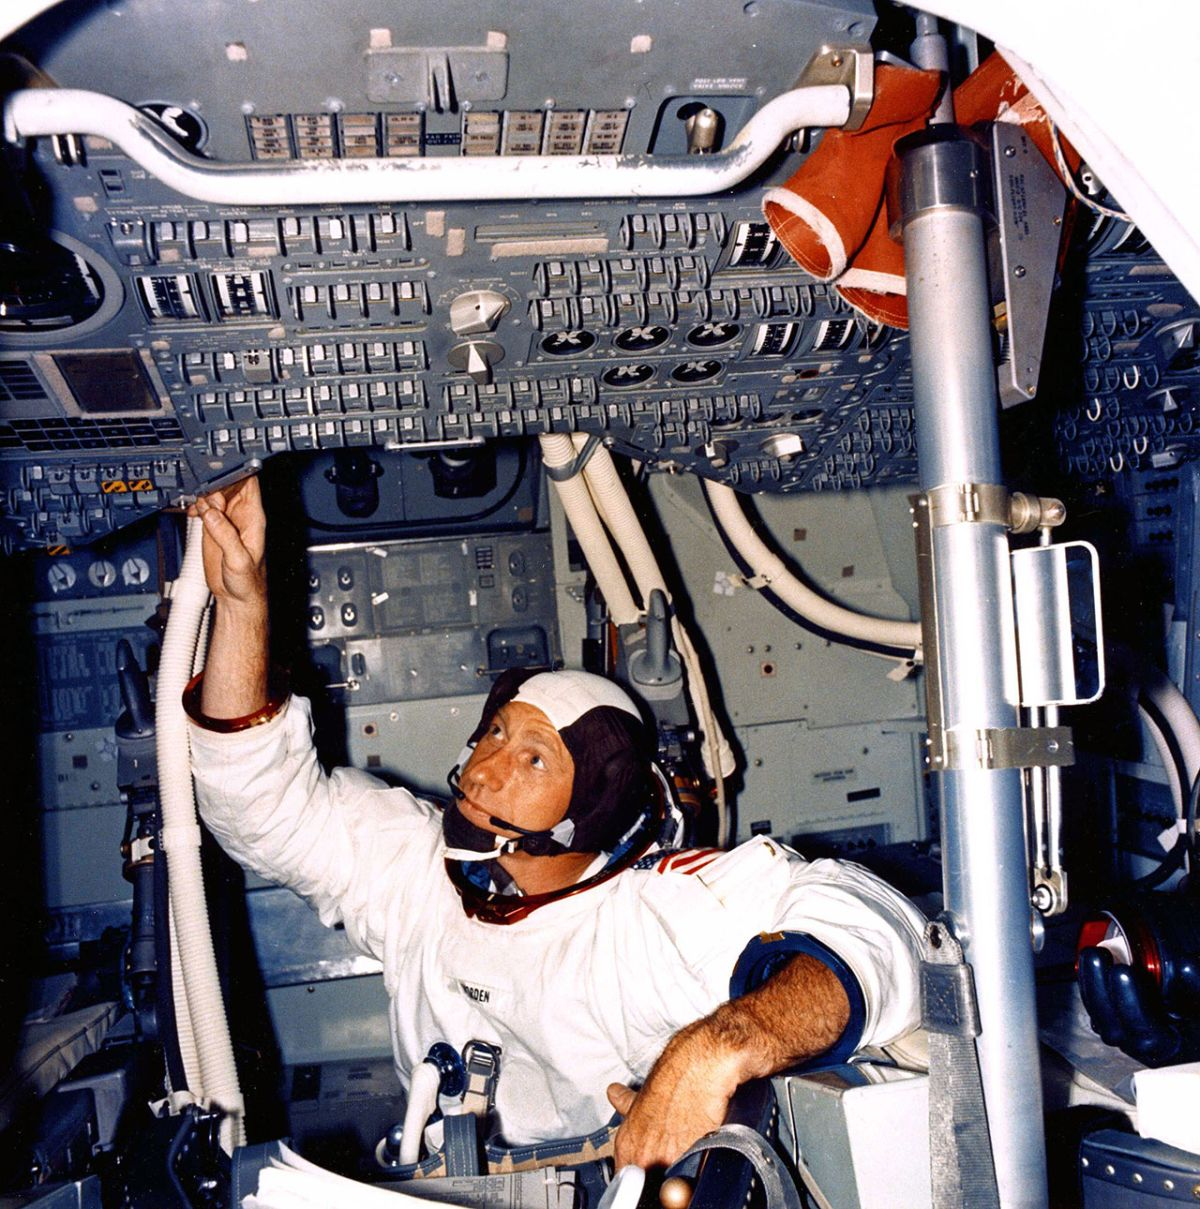 Al Worden: Apollo 15 astronaut and first person to spacewalk in deep space